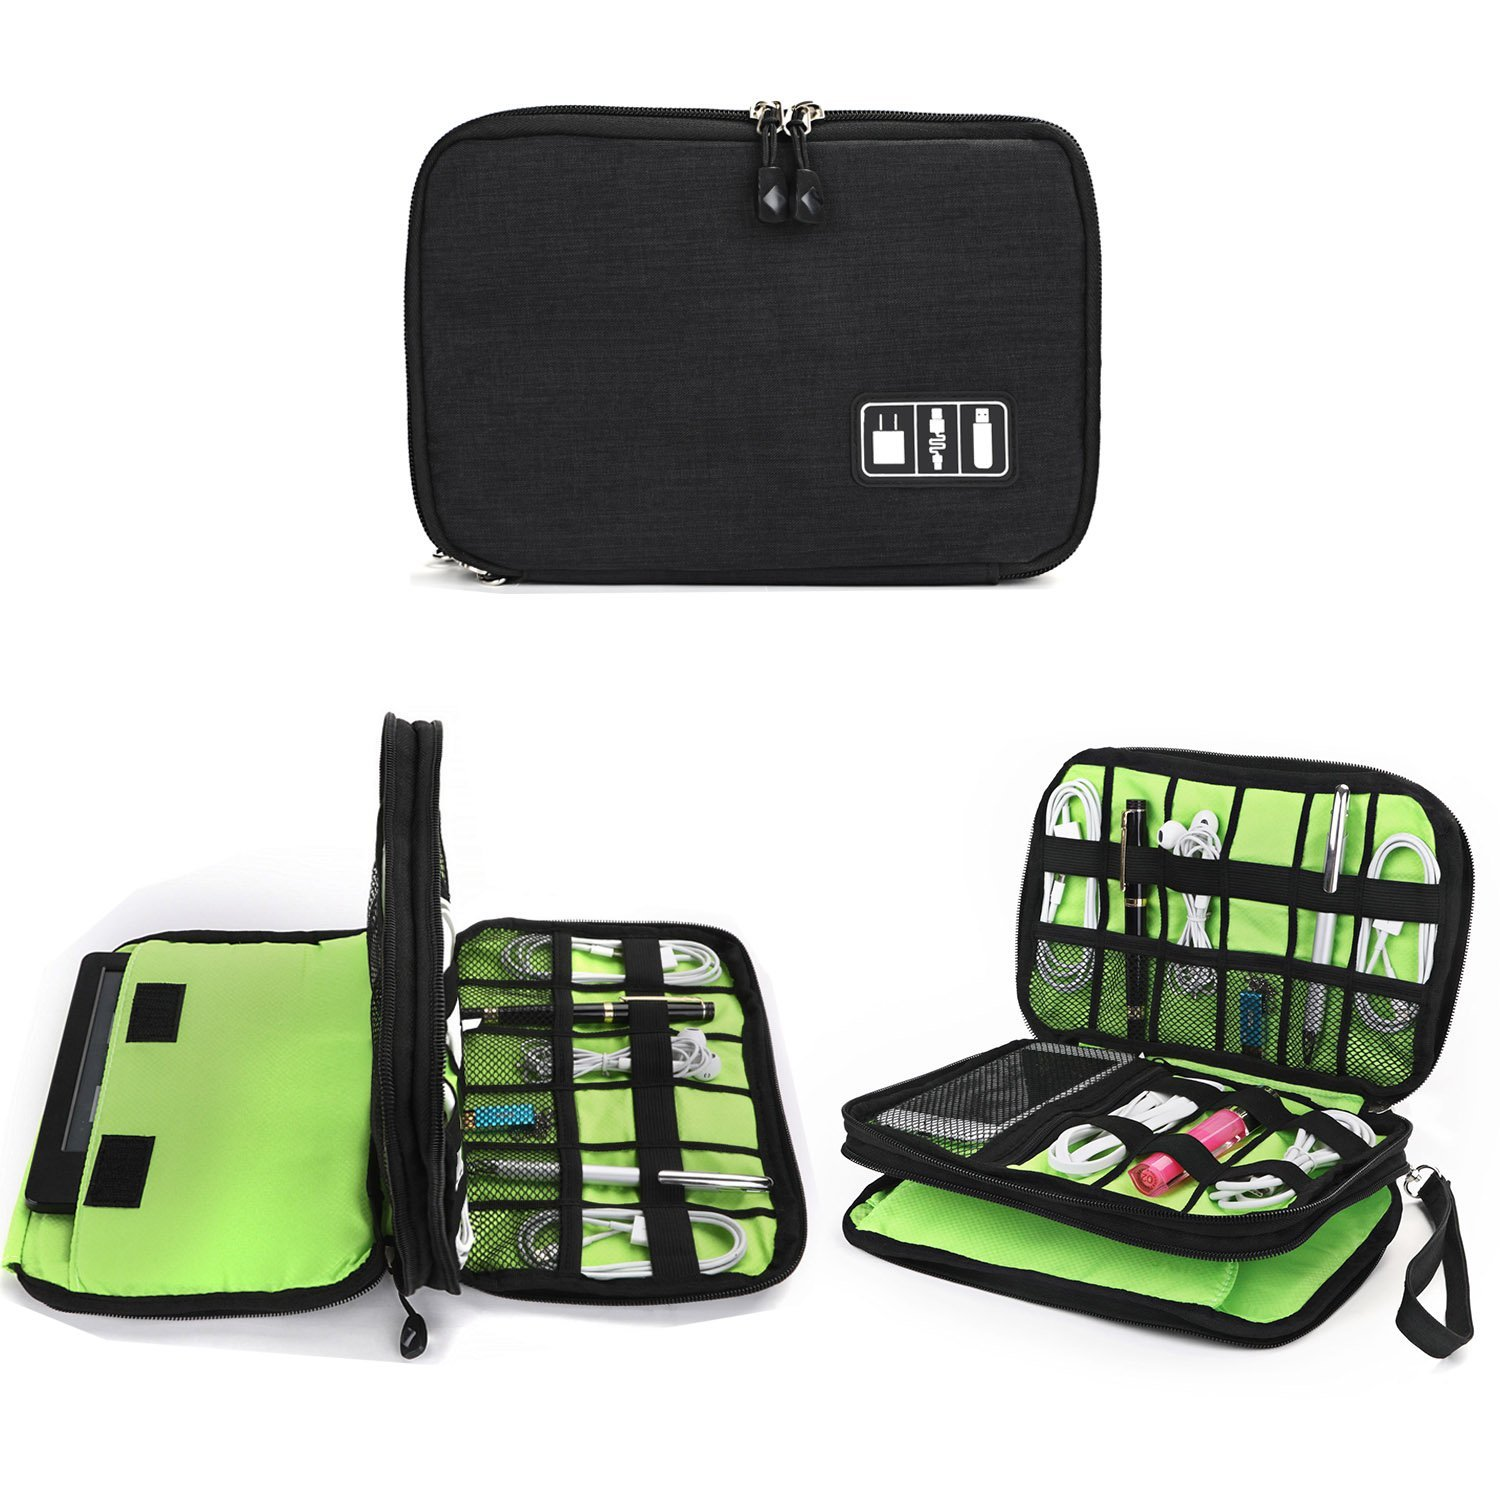 Cable Organizer Bag, Jelly Comb Electronic Accessories Double Layer Travel Organizer Bag Waterproof USB Cable Storage Bag for Charging Cable, Cellphone, iPad (Up to 7.9) and More-(Black and Green)